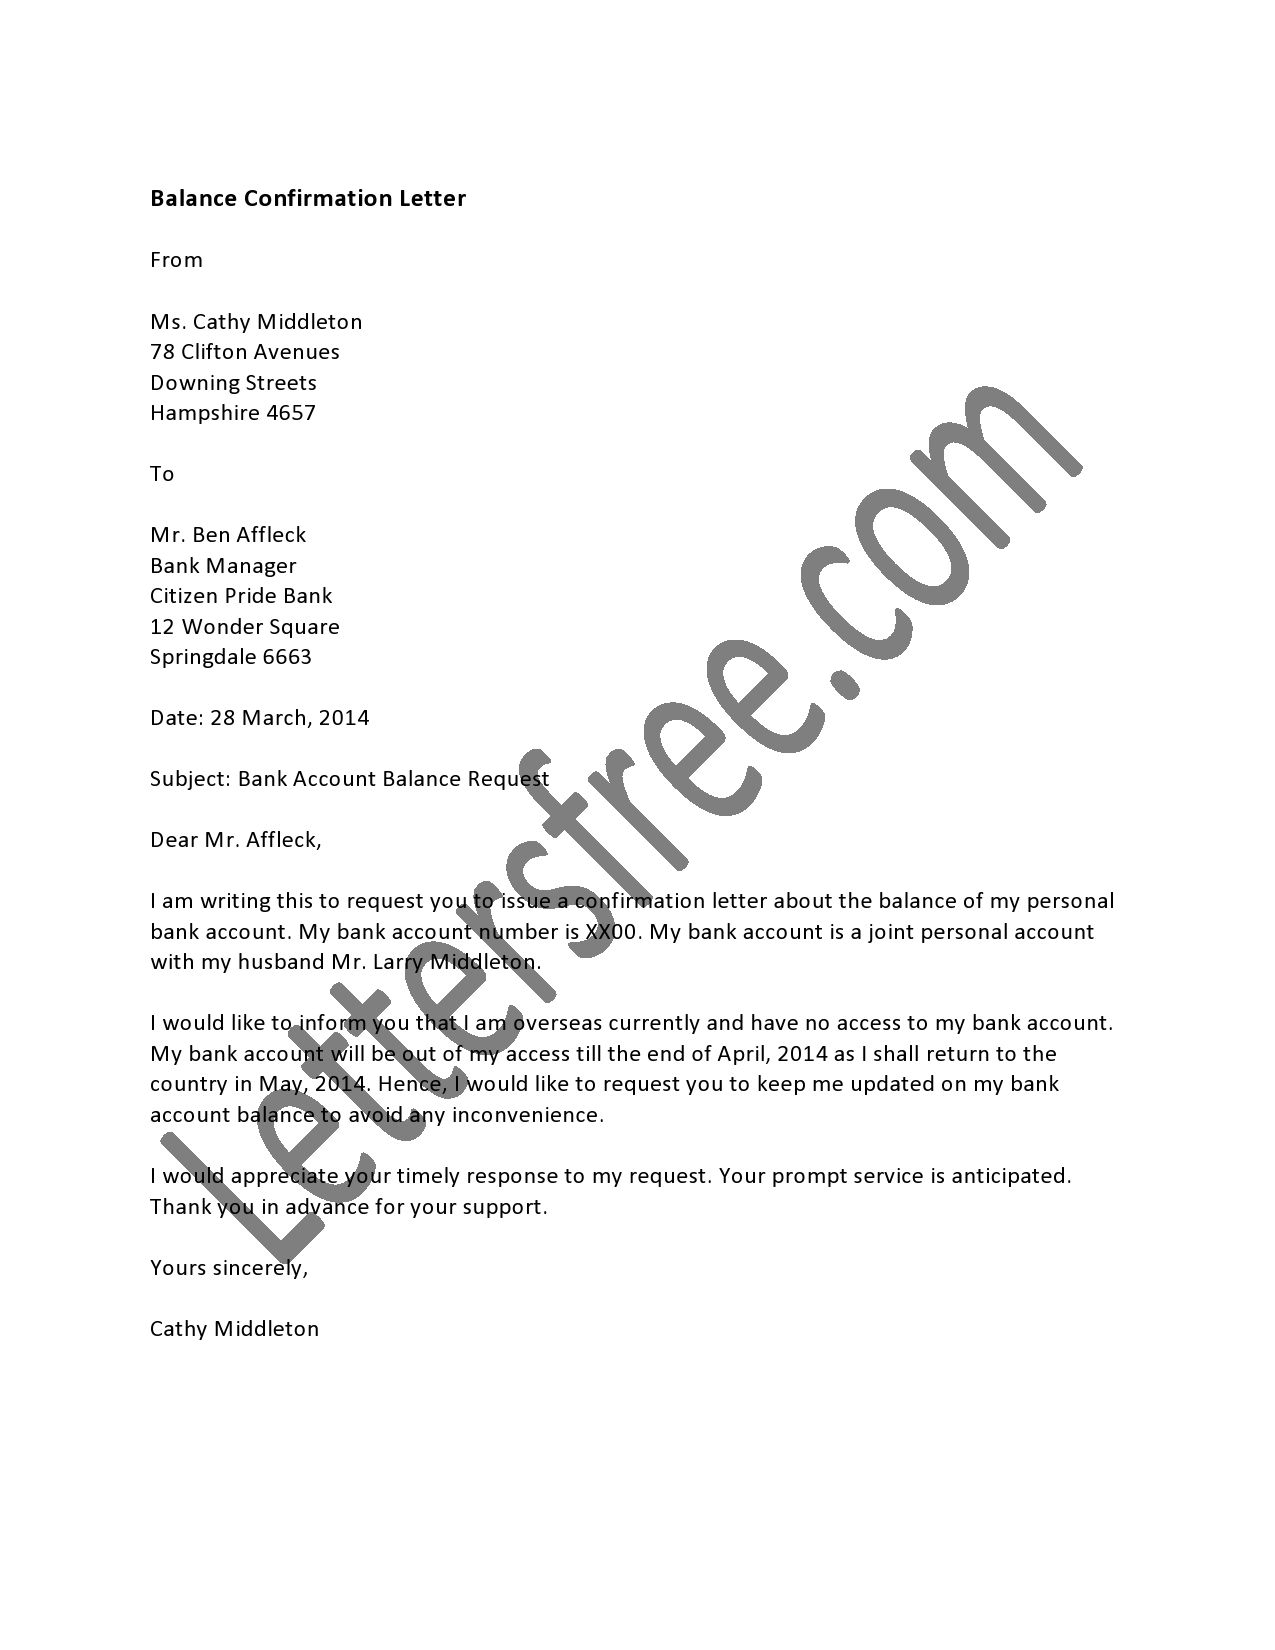 letter official auditors audits balance letters audit confirmation sample bank account verification certification hsbc for